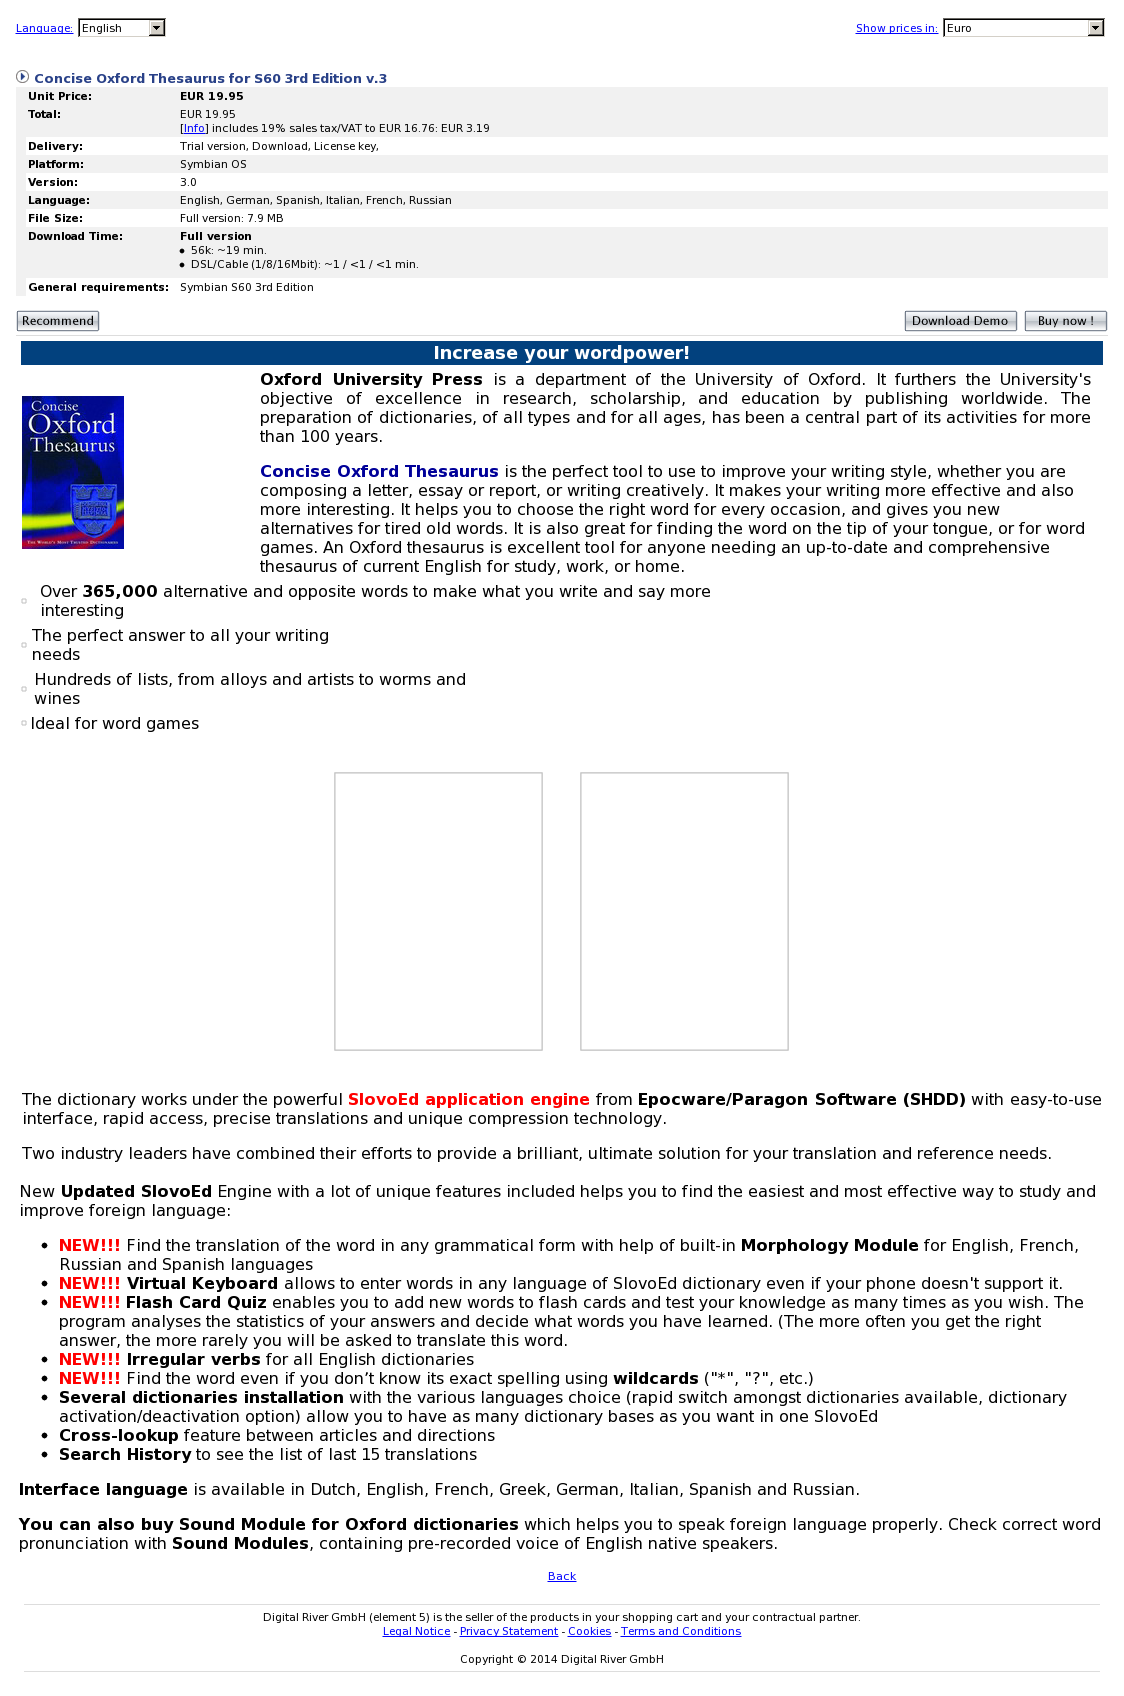 Concise Oxford Thesaurus for S60 3rd Edition v.3